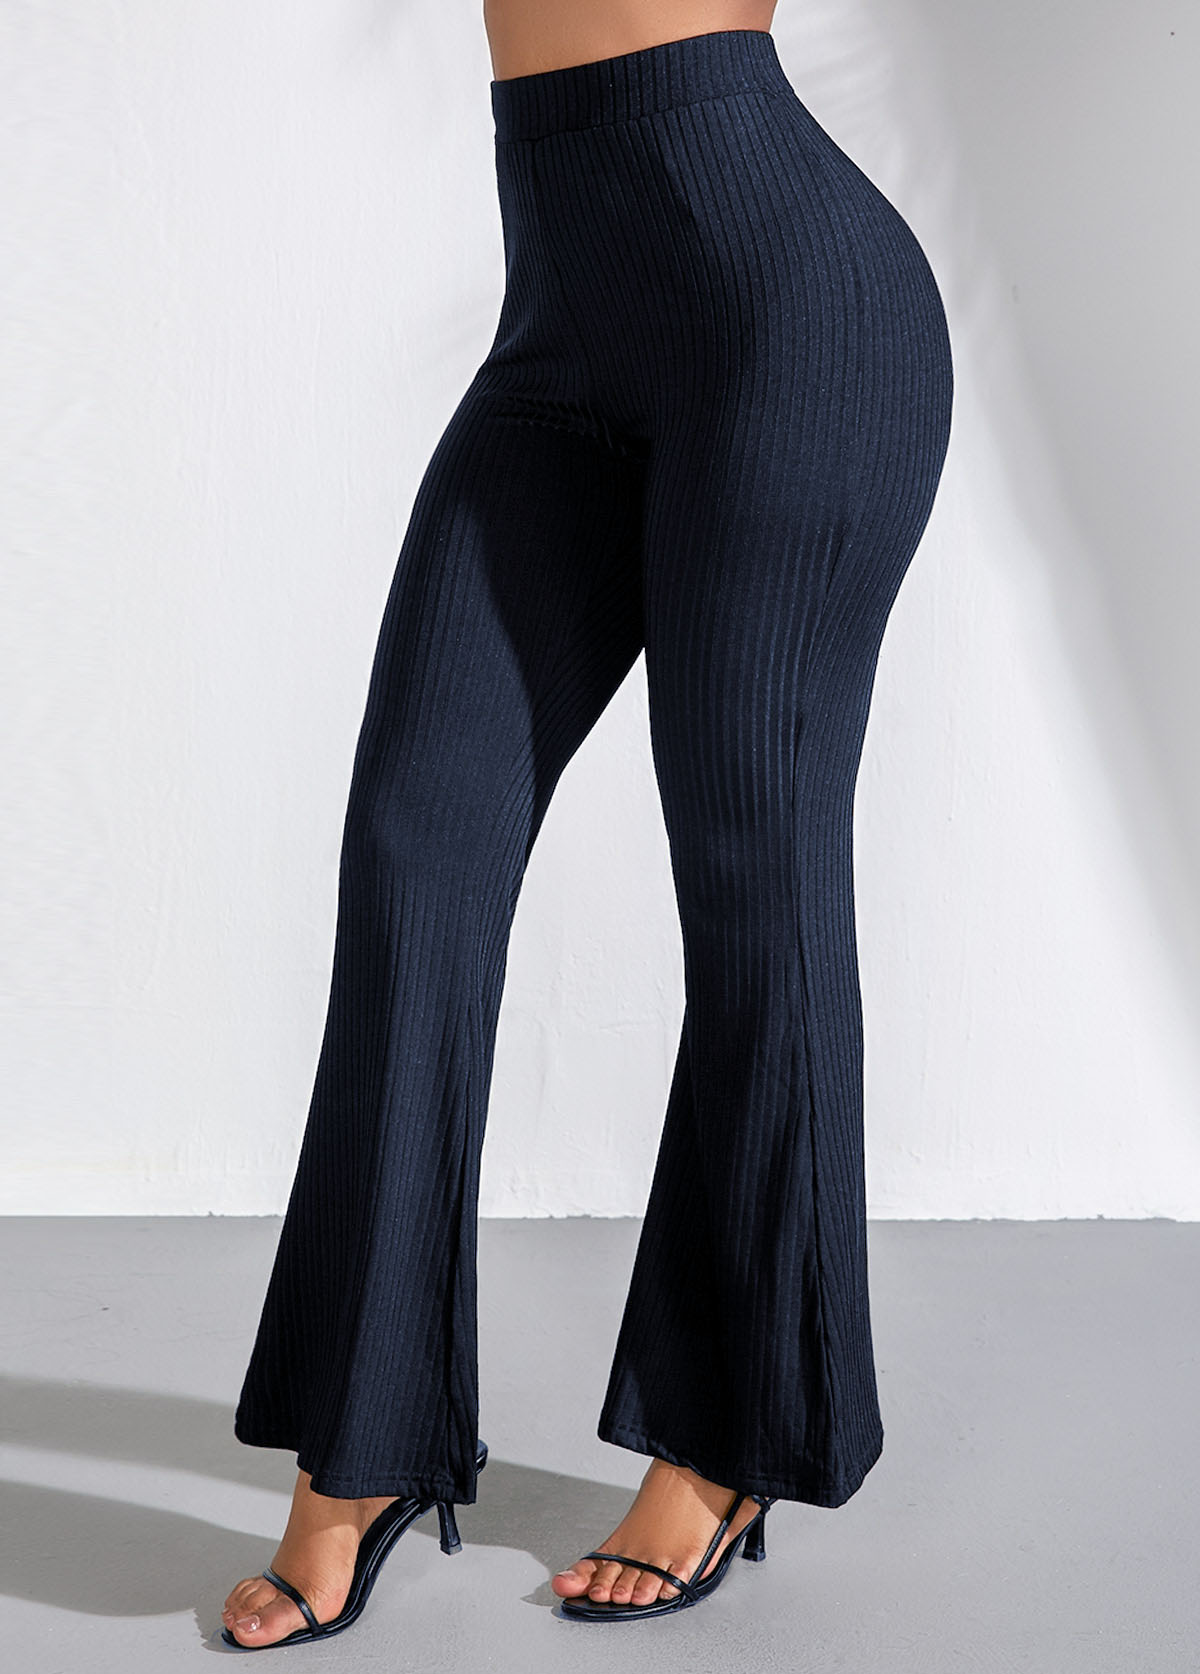 Navy Blue High Waist Flare Pants